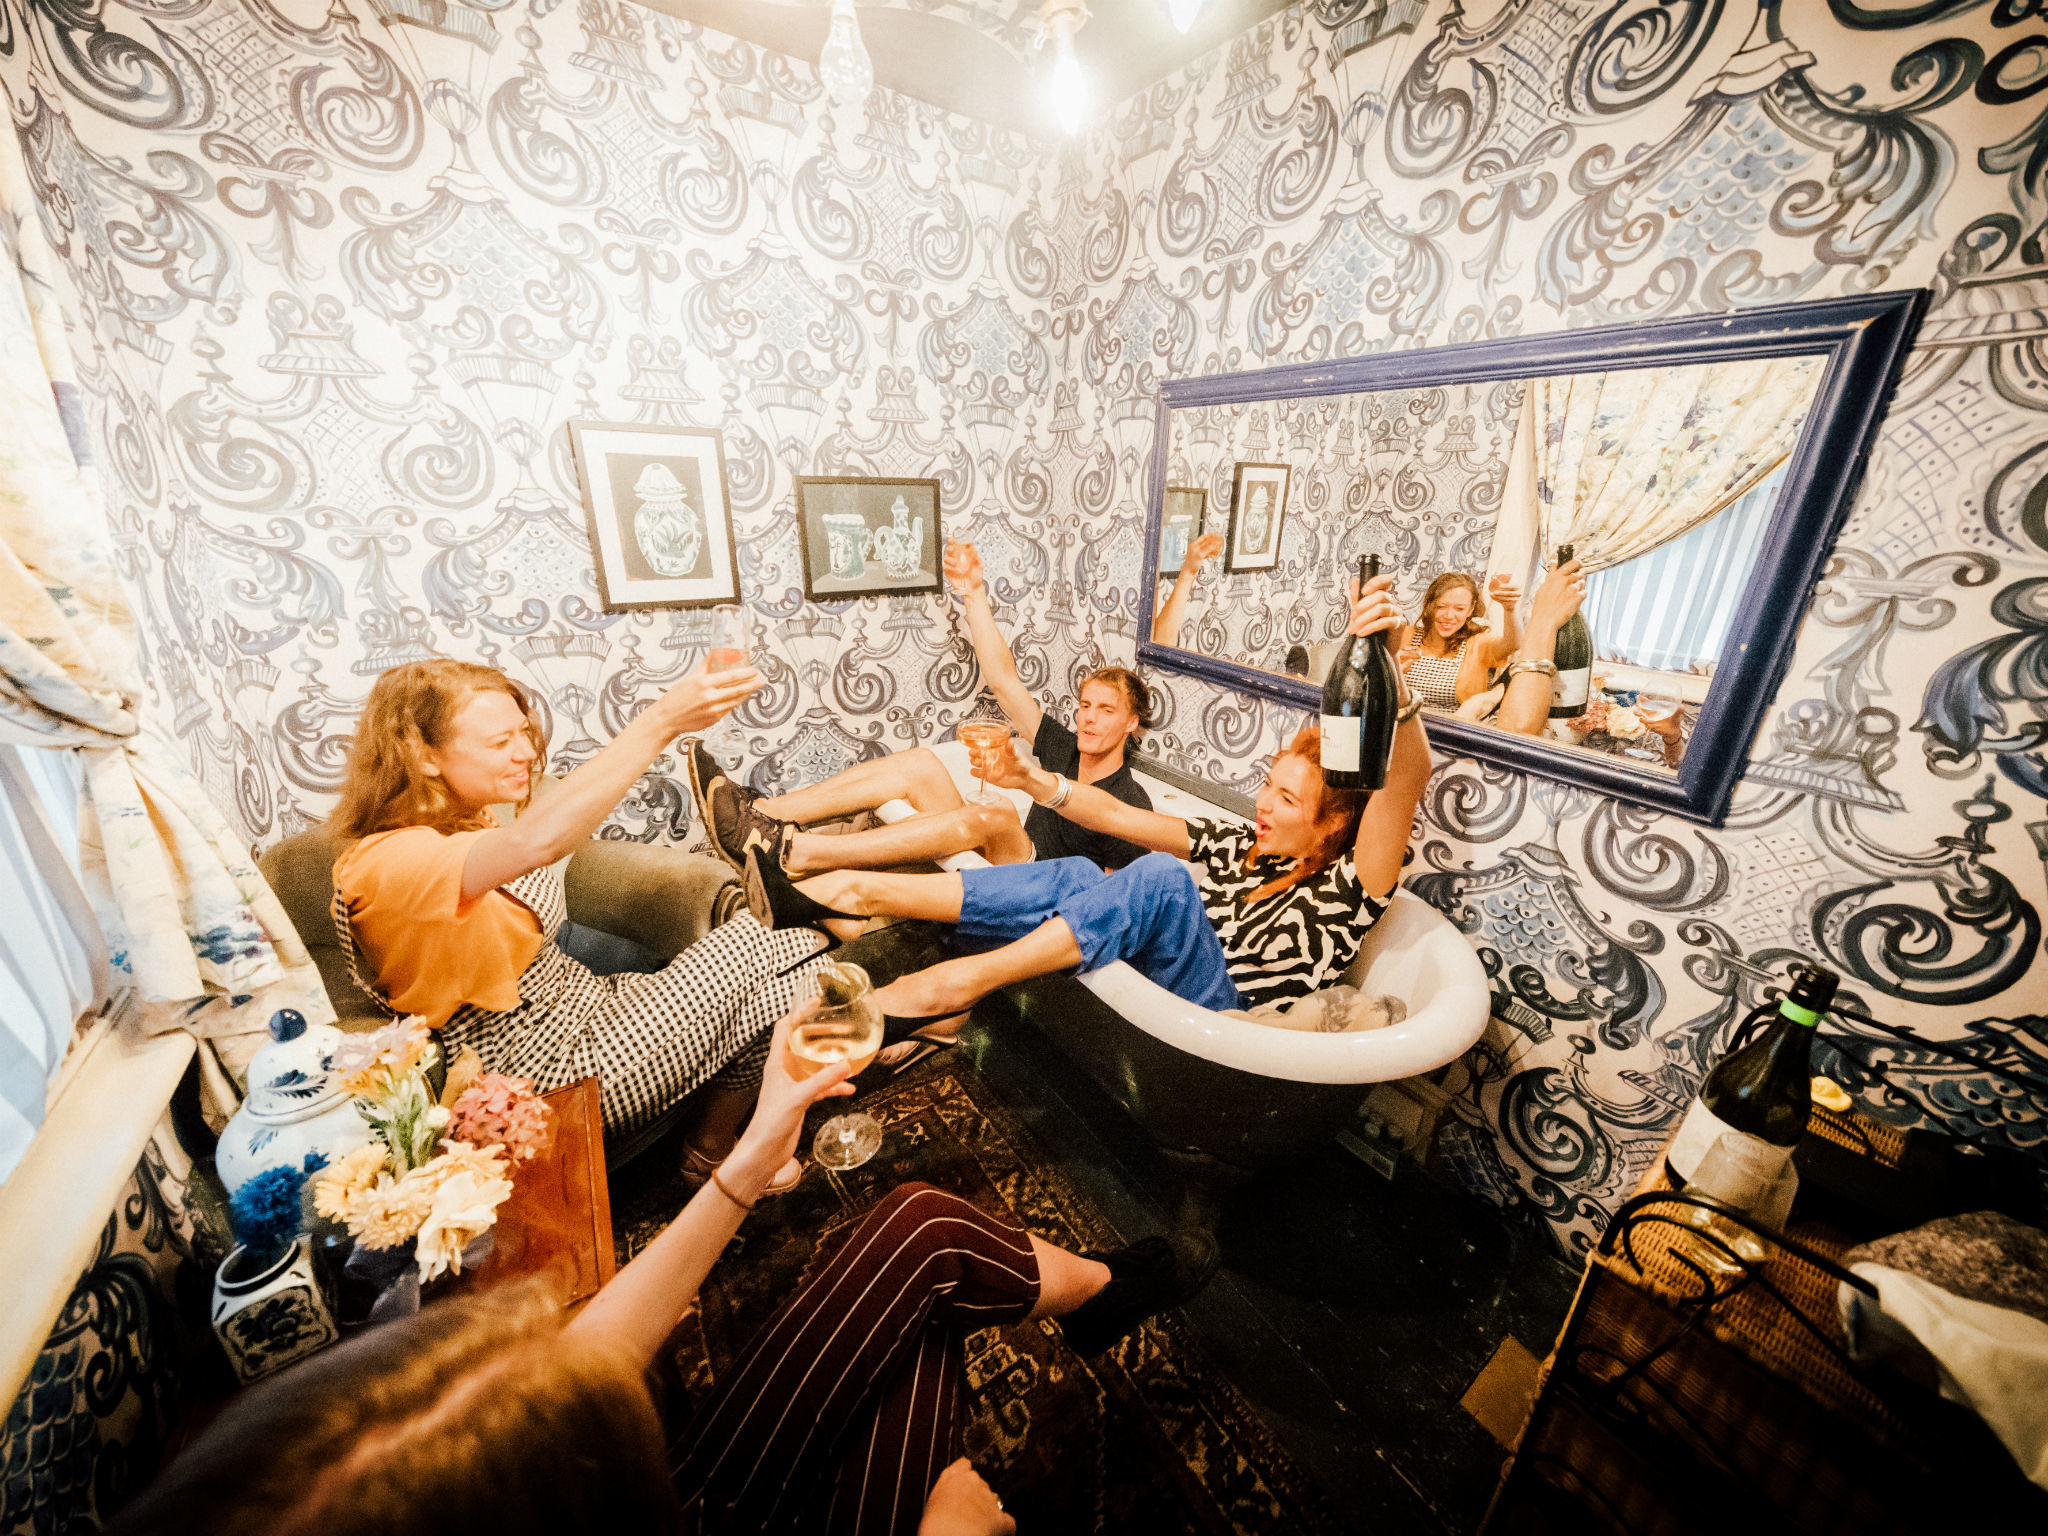 Get sloshed in the bath at this house party-themed bar in Waterloo